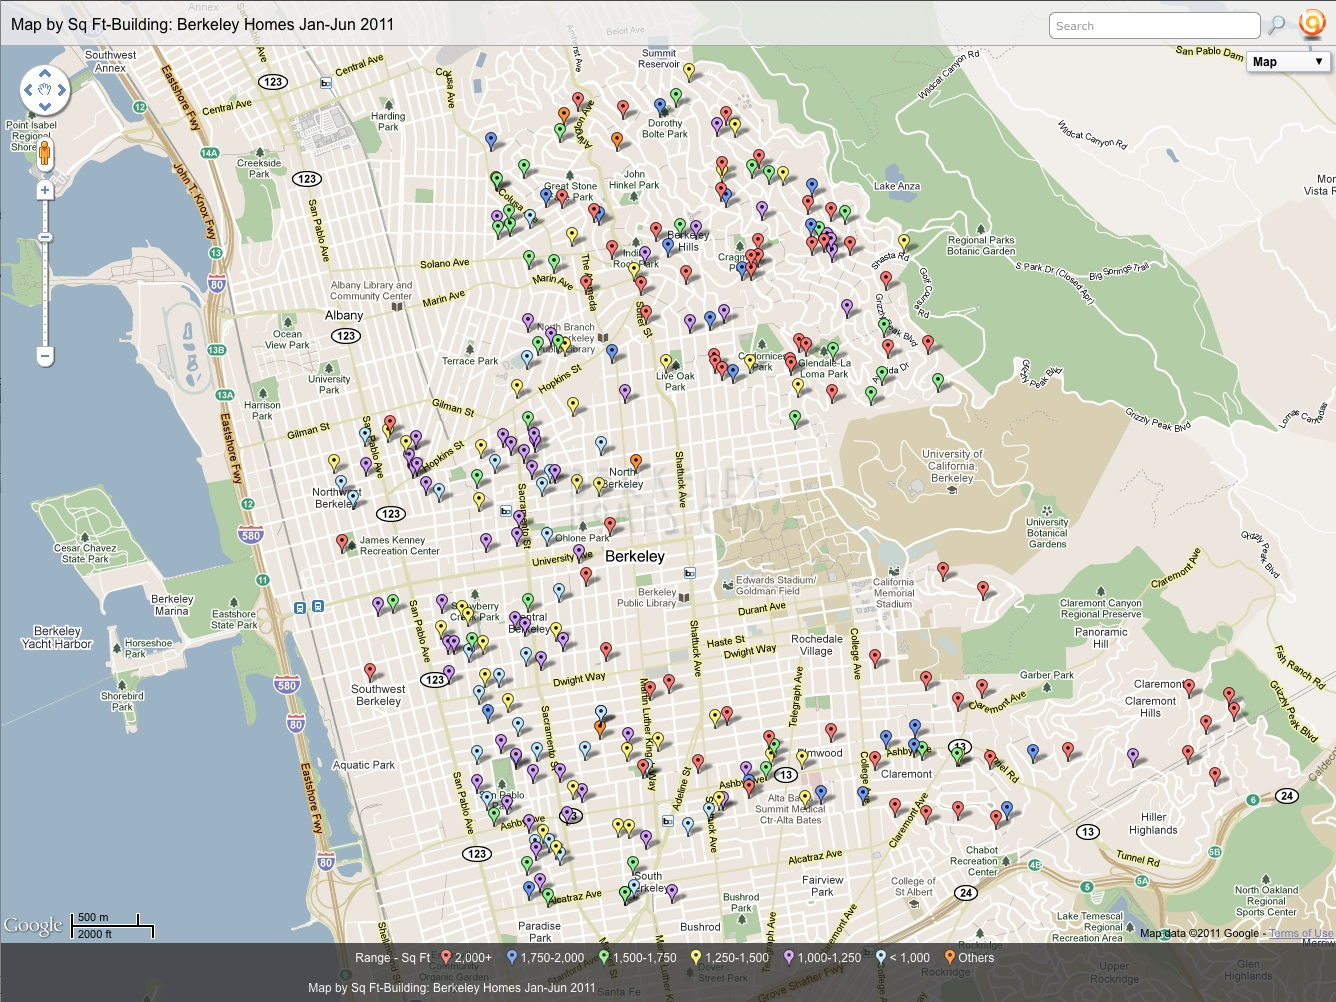 map-berkeley-mls-research-2011-01-06-single-family-home-square-feet-building-size